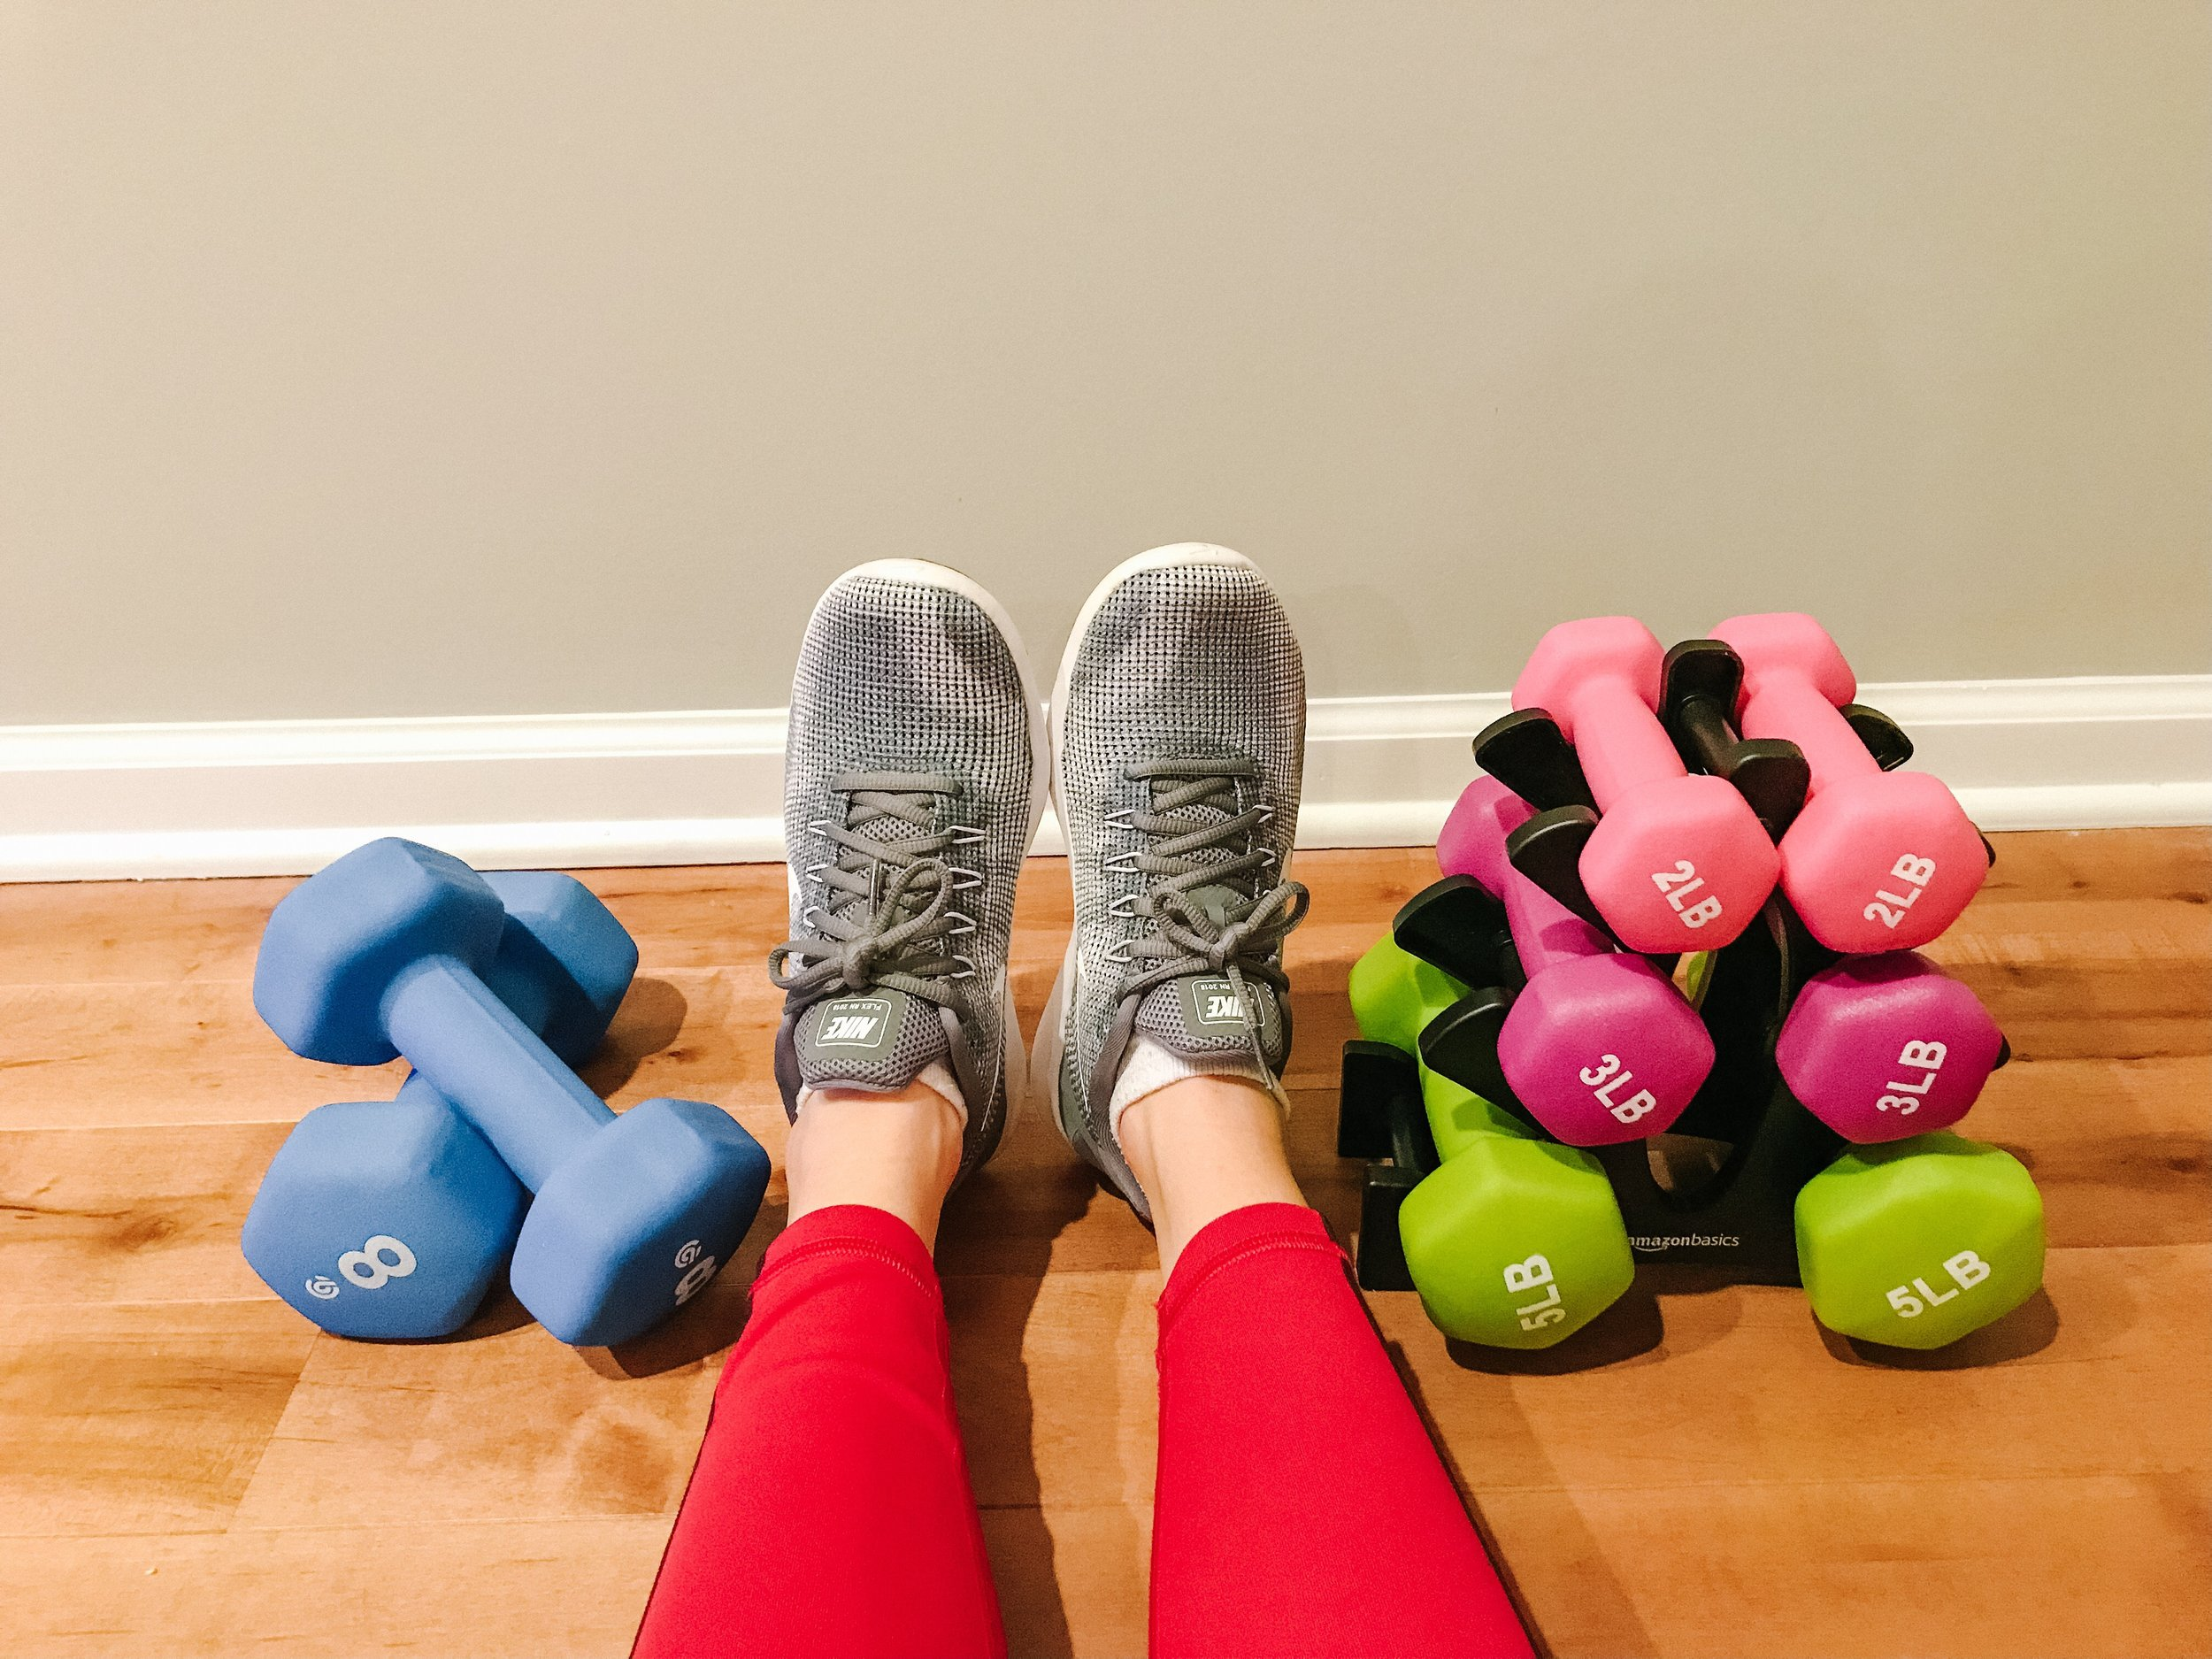 Healthy Lifestyle Food and Exercise Inspiration